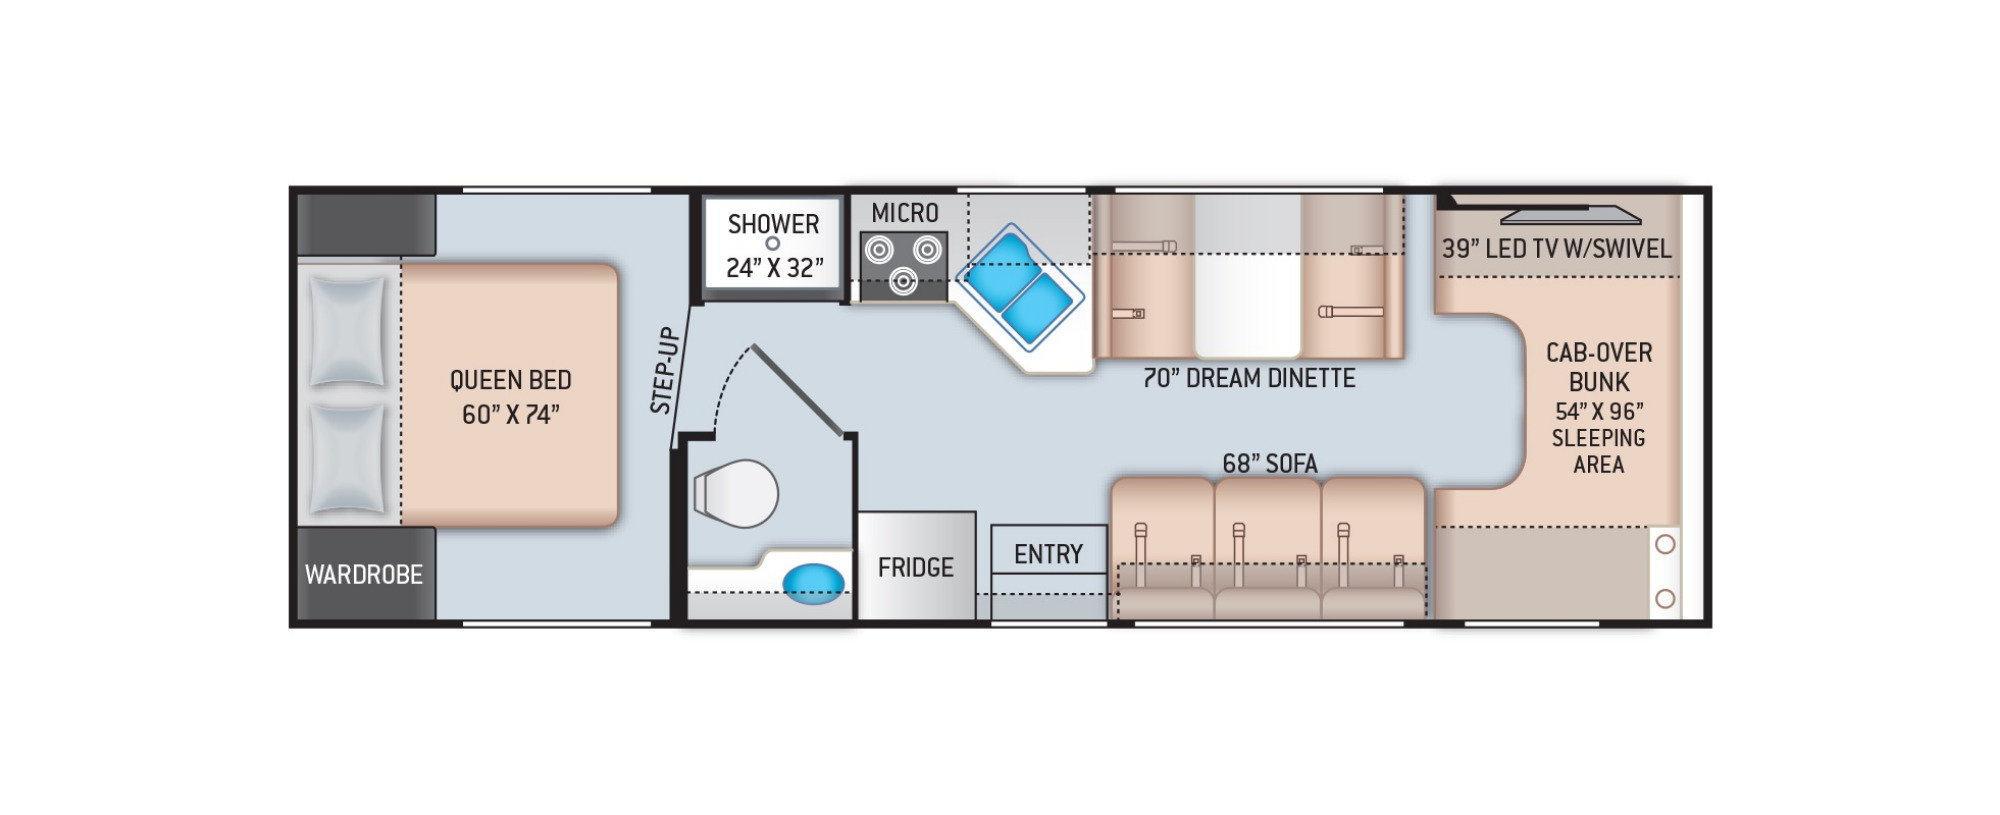 View Floor Plan for 2021 THOR CHATEAU 28A